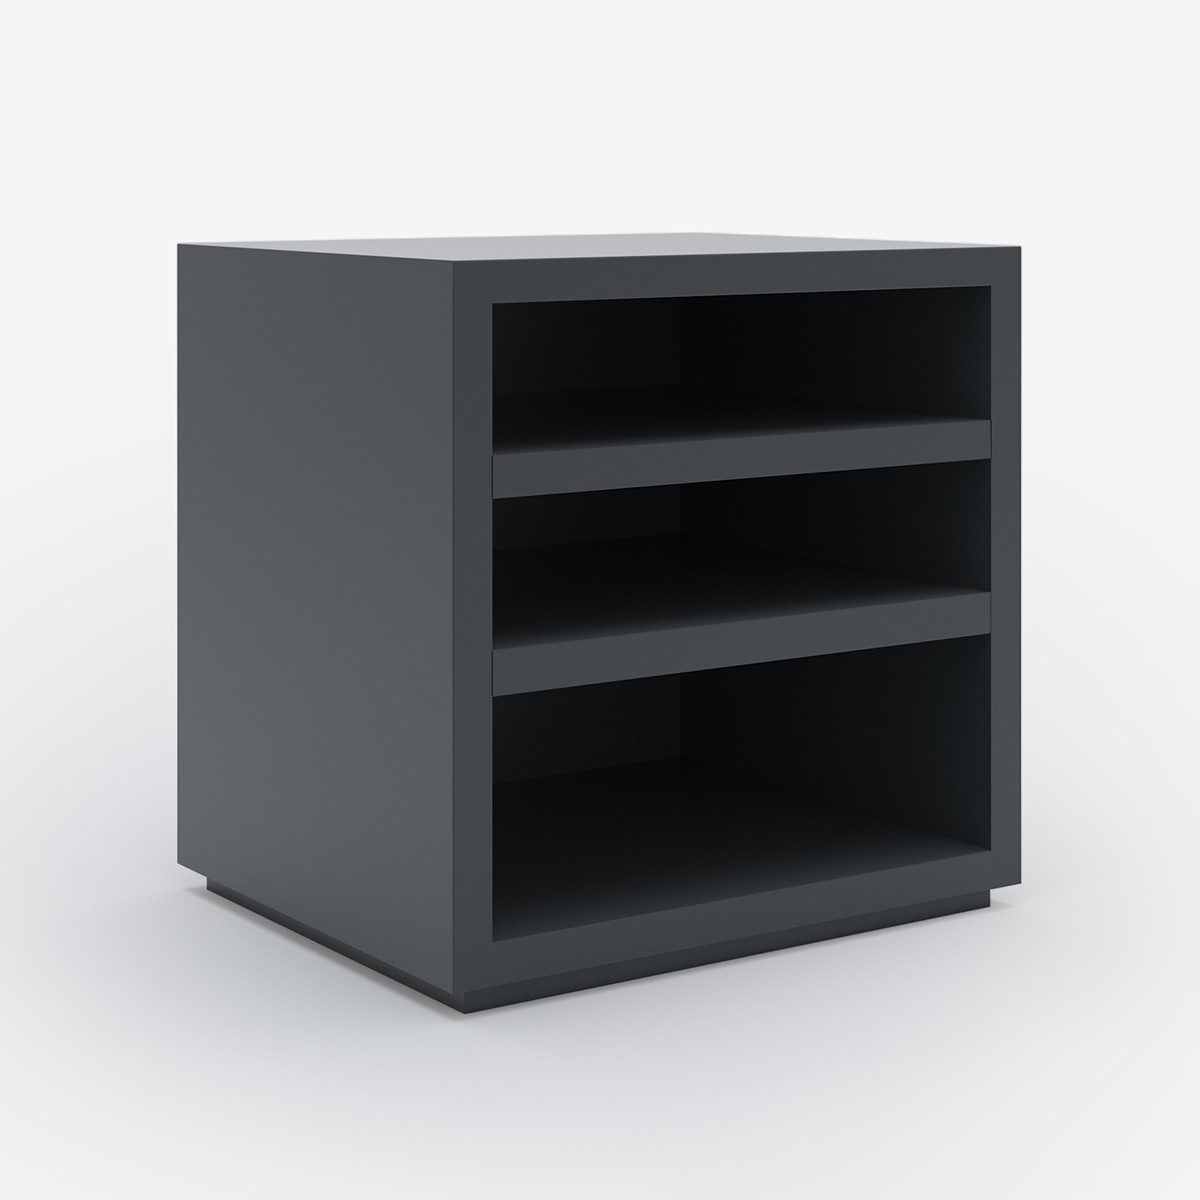 Image shows Simply Sorted Bedside Table in Graphite Grey Lacquer - W50 x D40 x H60 cm